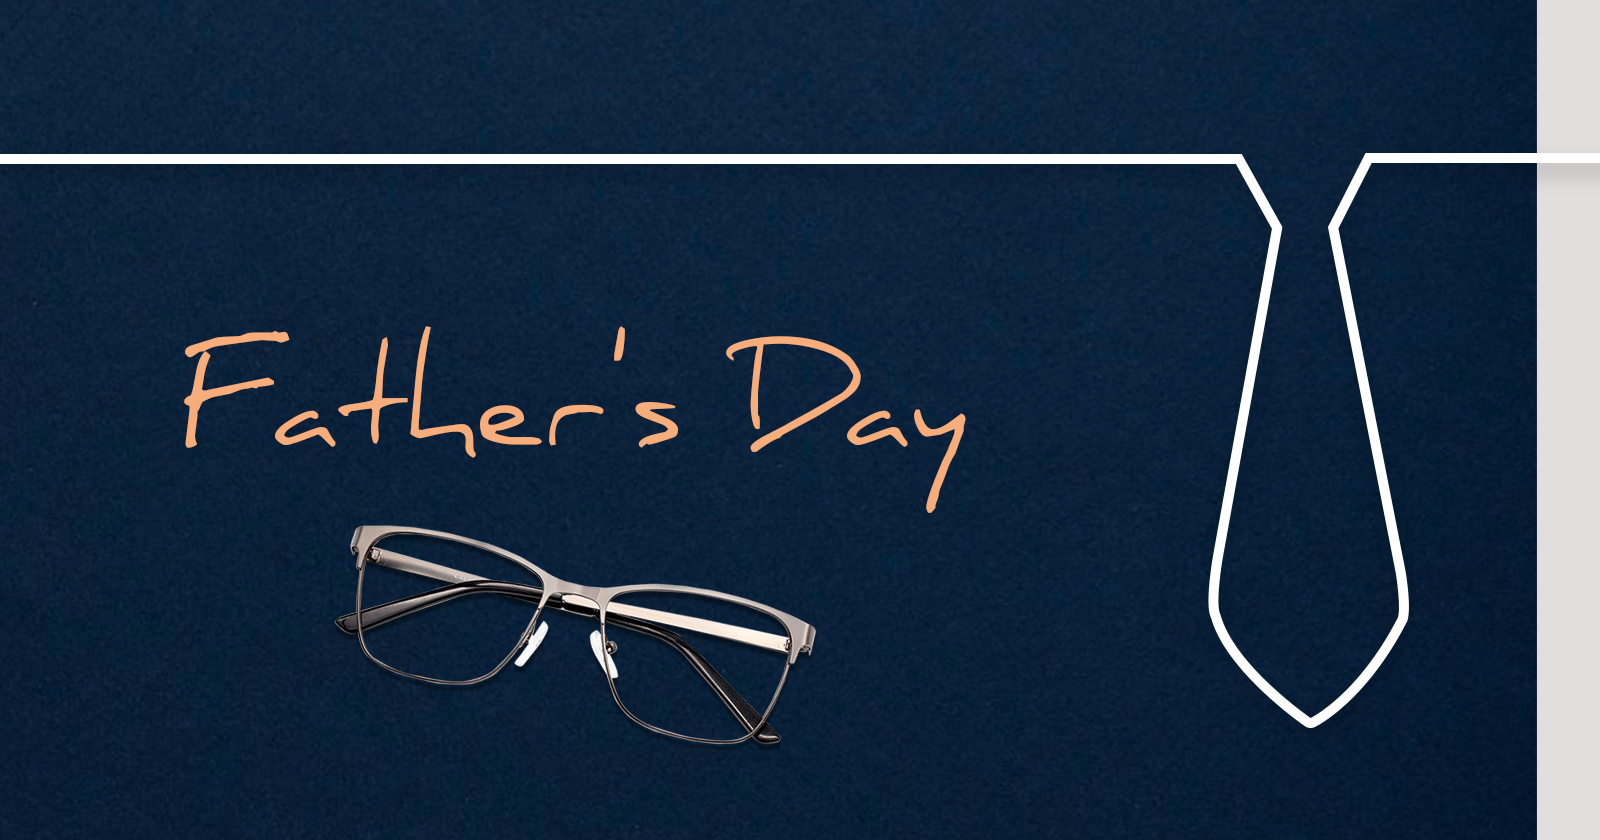 Vlook's Best Eyeglasses for Father's Day